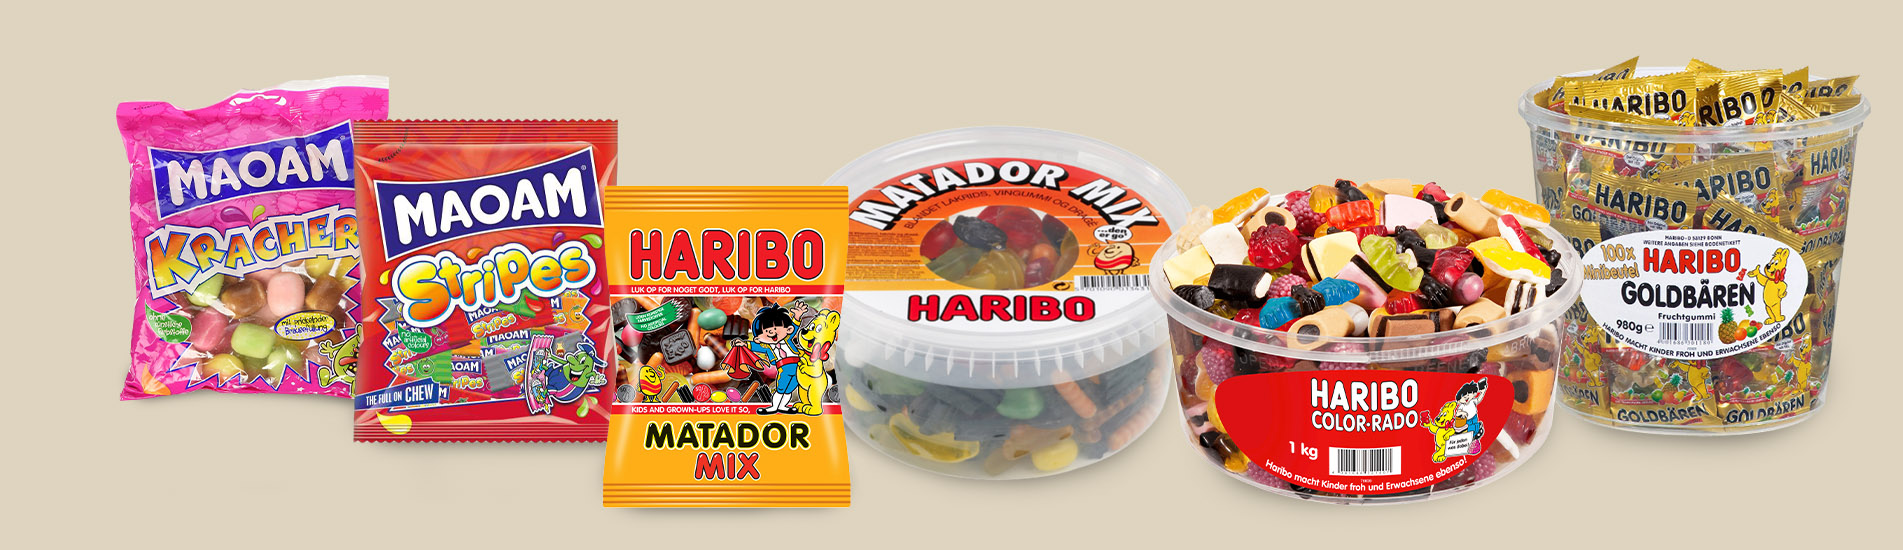 Haribo and Maoam – the famous gummy bears and liquorice